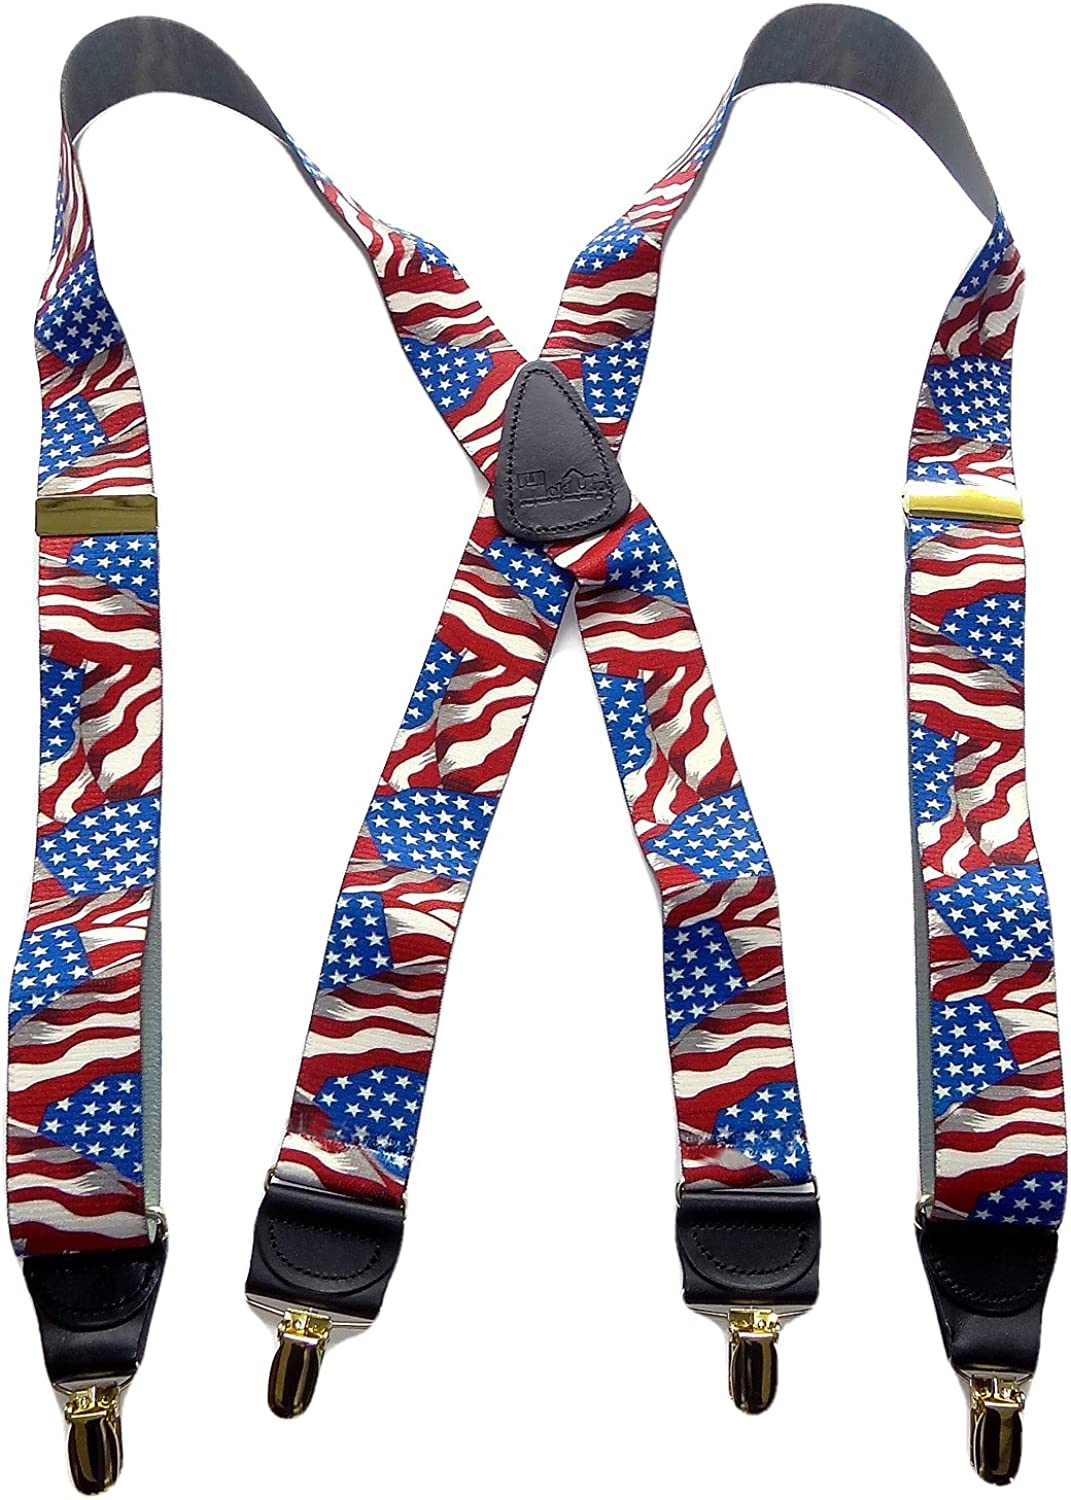 Holdup Suspender Company's USA American Flag Pattern Designer Series X-back Suspenders with Gold-tone clips